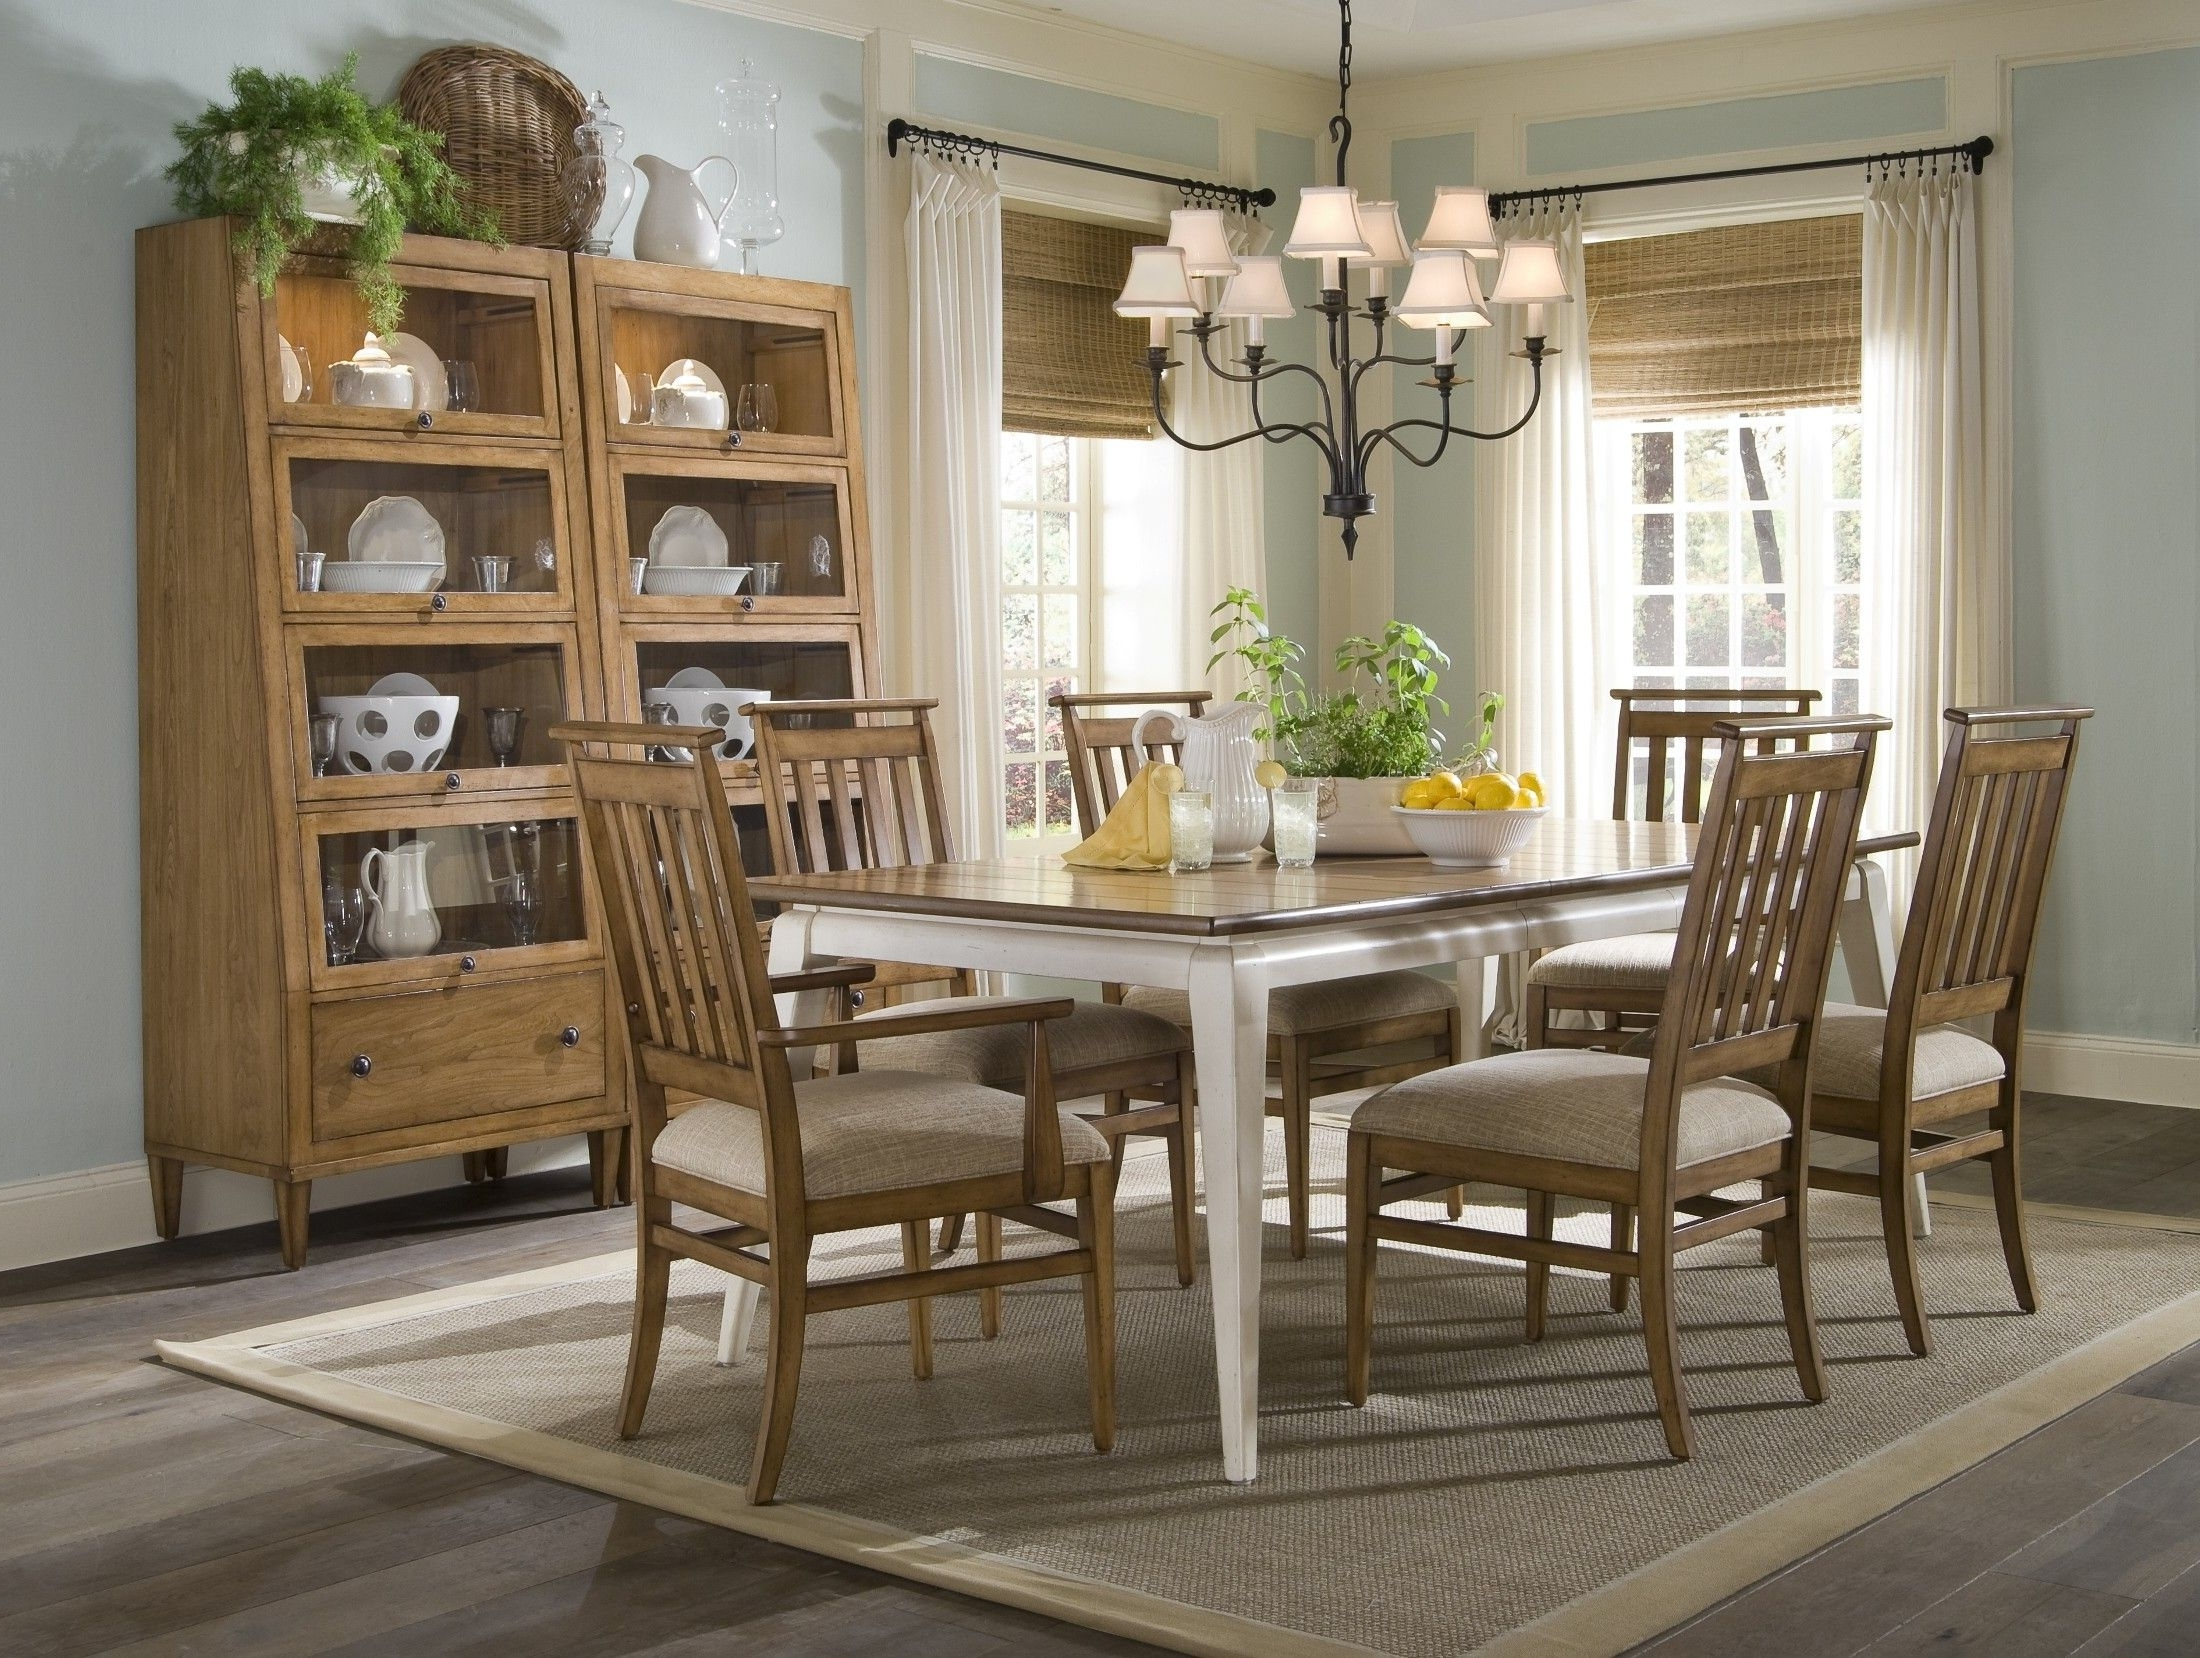 Norwood 6 Piece Rectangular Extension Dining Sets With Upholstered Side Chairs Inside 2018 Country Dining Room Furniture Inside Modern Design White Decorating (View 23 of 25)